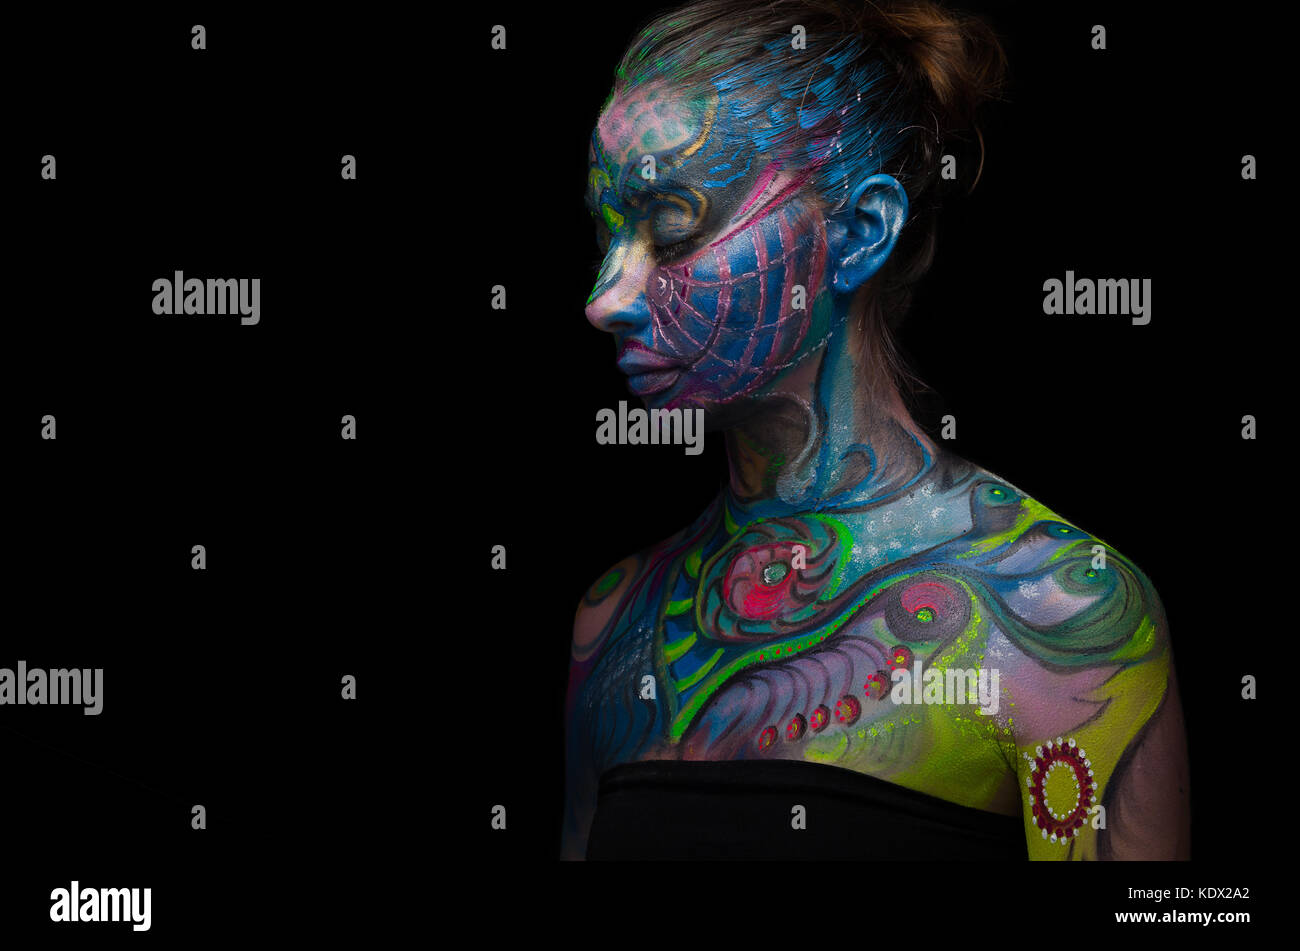 Belle body art - visage artistique (vue de gauche) Photo Stock